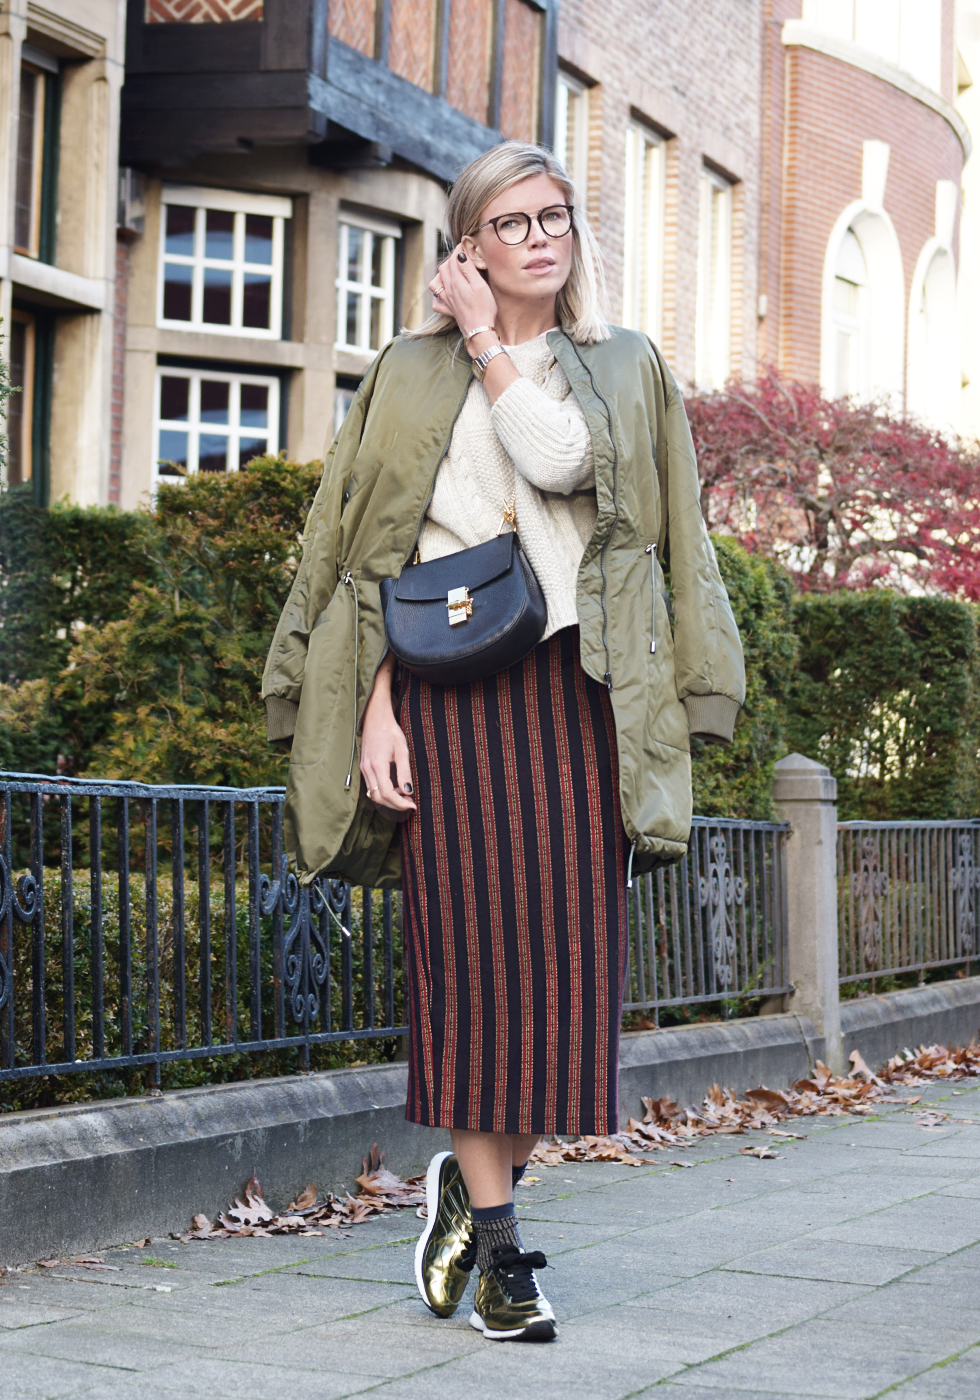 Dewolf, Marc by Marc Jacobs, Dondup, Hogan, Mia Zia, Pinko, Cartier, Chloé, spell on me, ootd, style, fashion, blog